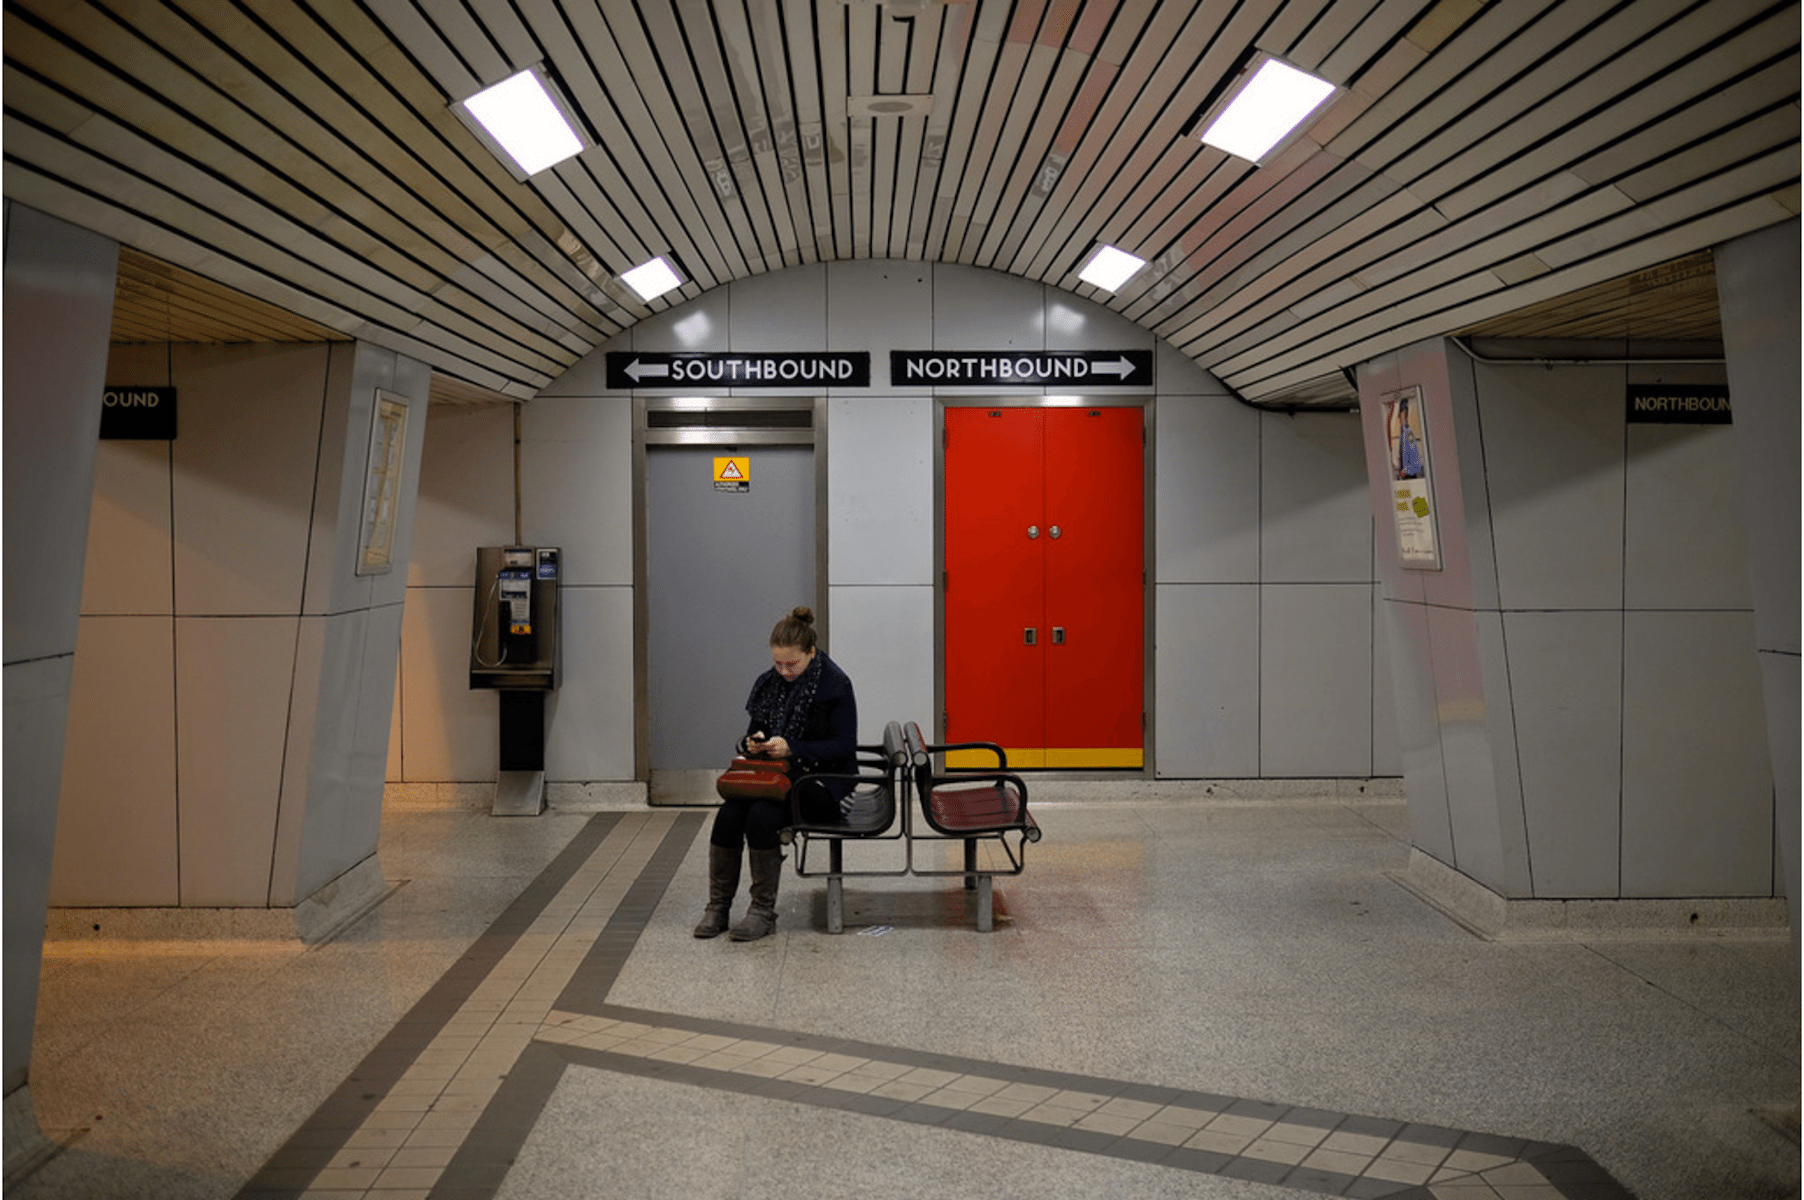 For women, riding the TTC can be an exercise in avoiding unwanted attention. Photo by Jason Cook in the Torontoist Flickr Pool.